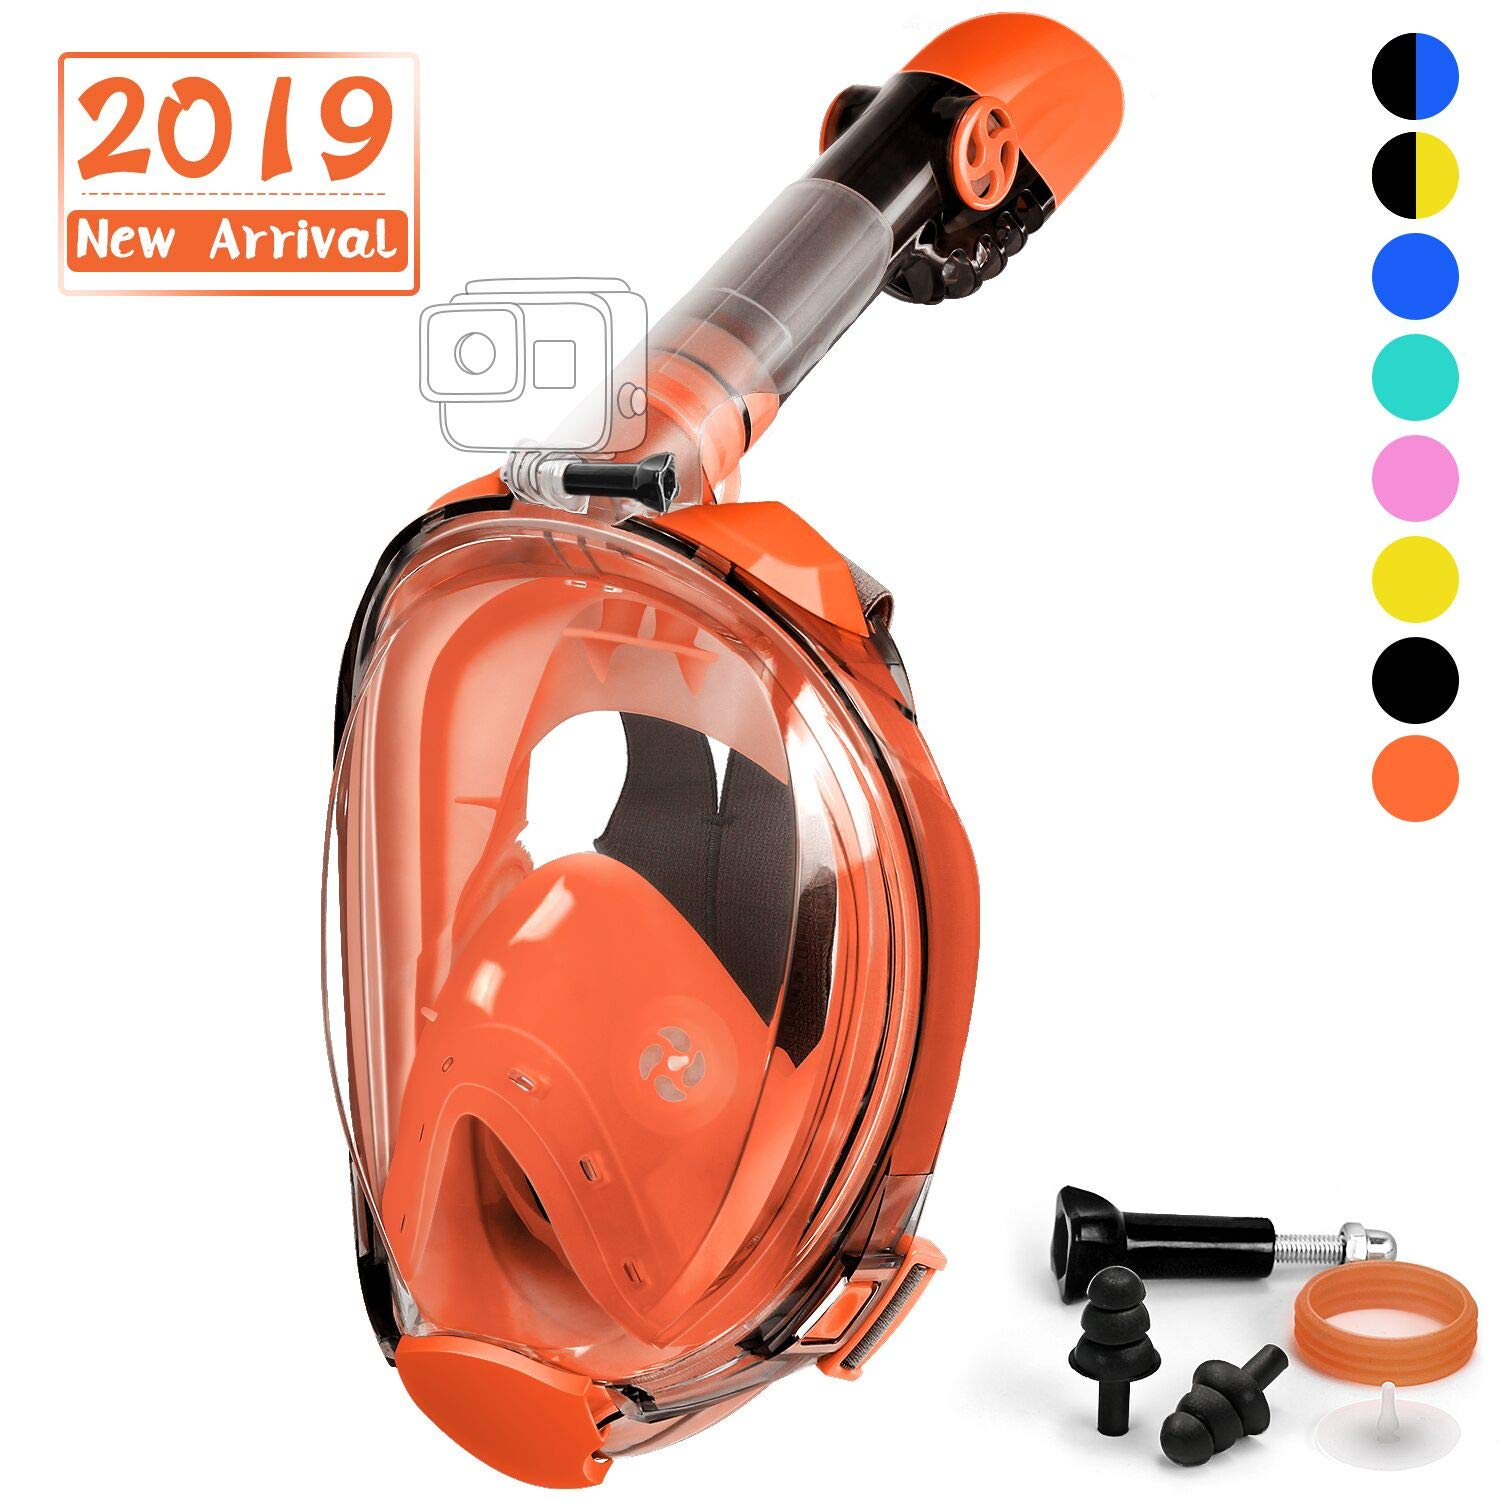 OUSPT Full Face Snorkel Mask, Snorkeling Mask with Detachable Camera Mount, 180° Large View Upgraded Dive Mask with Newest Breathing System, Dry Top Set Anti-Fog Anti-Leak (Orange, S/M) by OUSPT